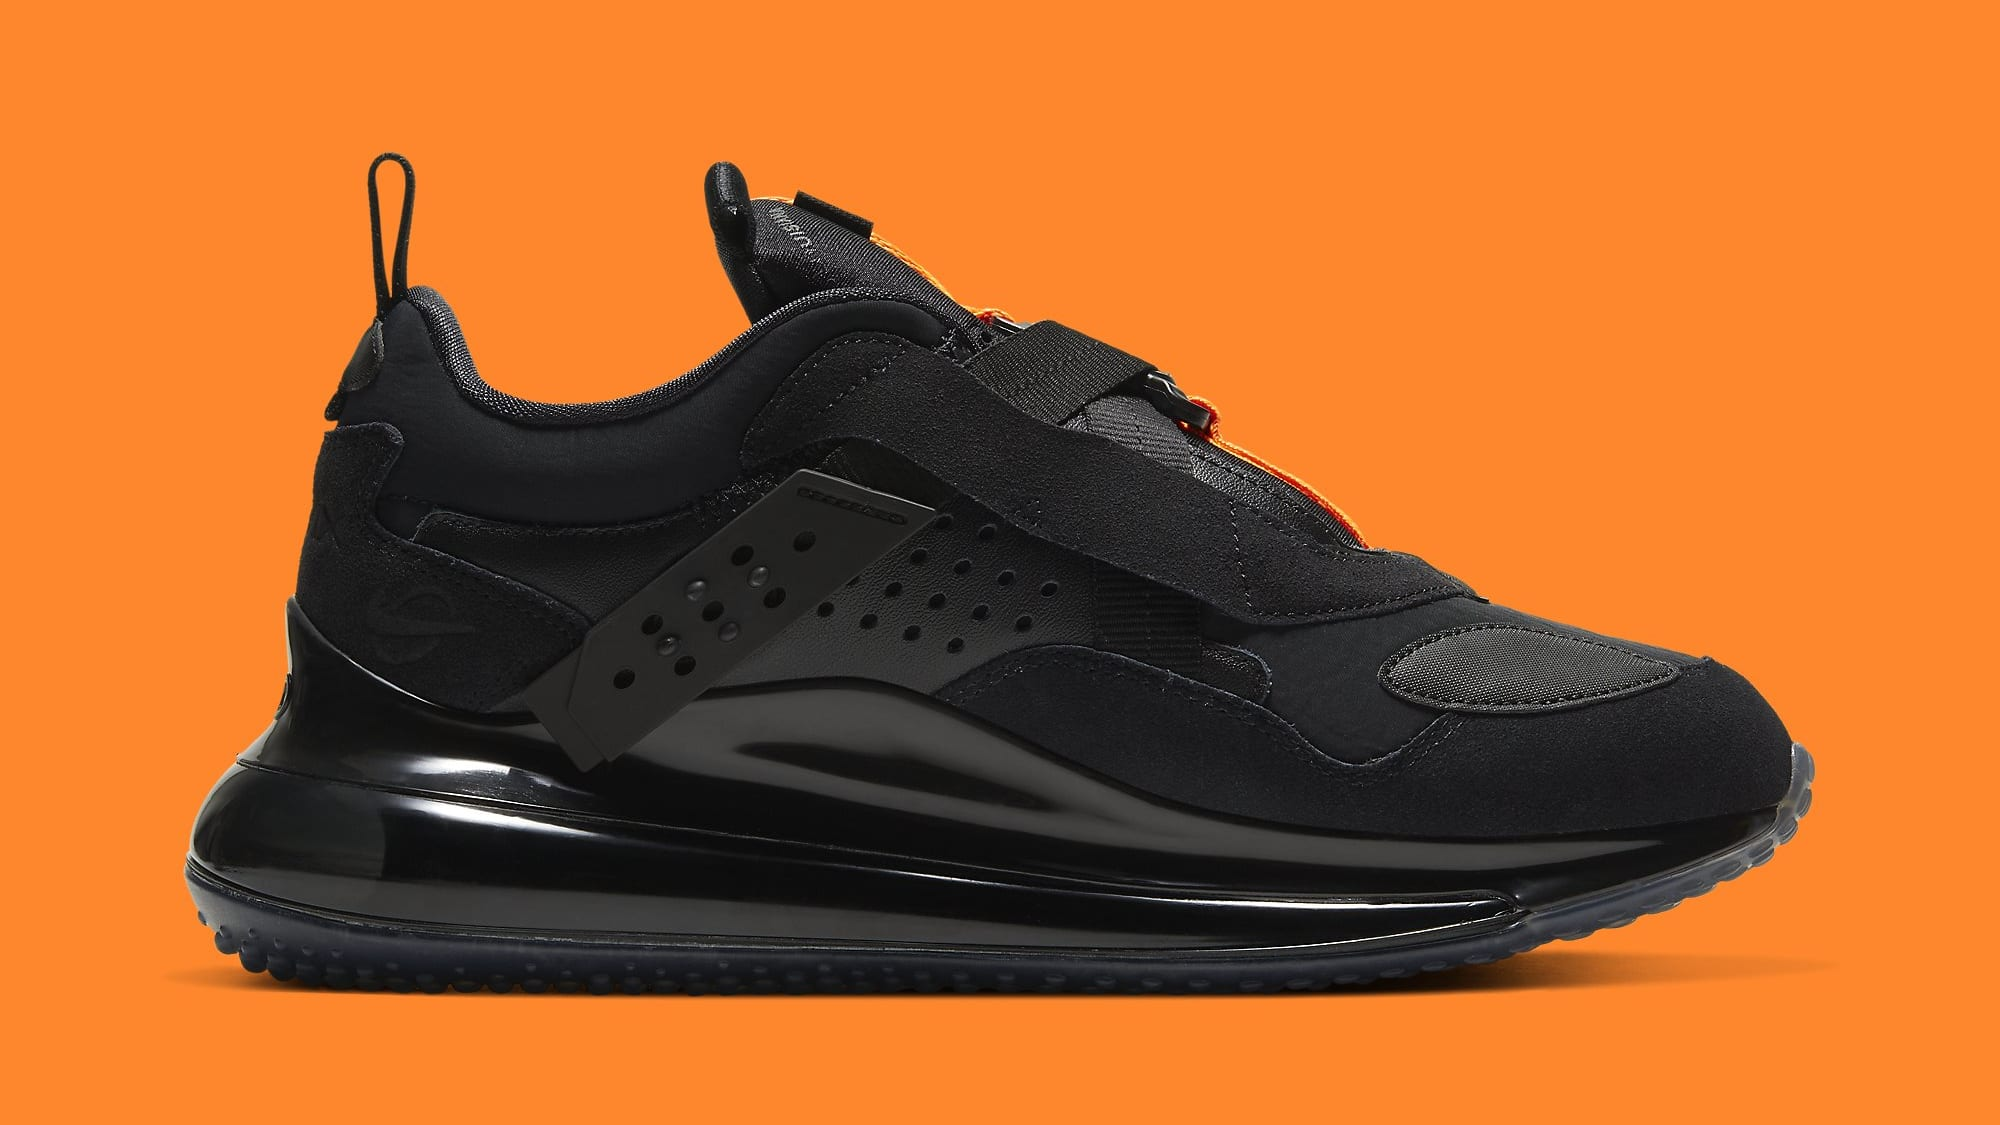 nike-air-max-720-slip-obj-black-dq4155-001-medial